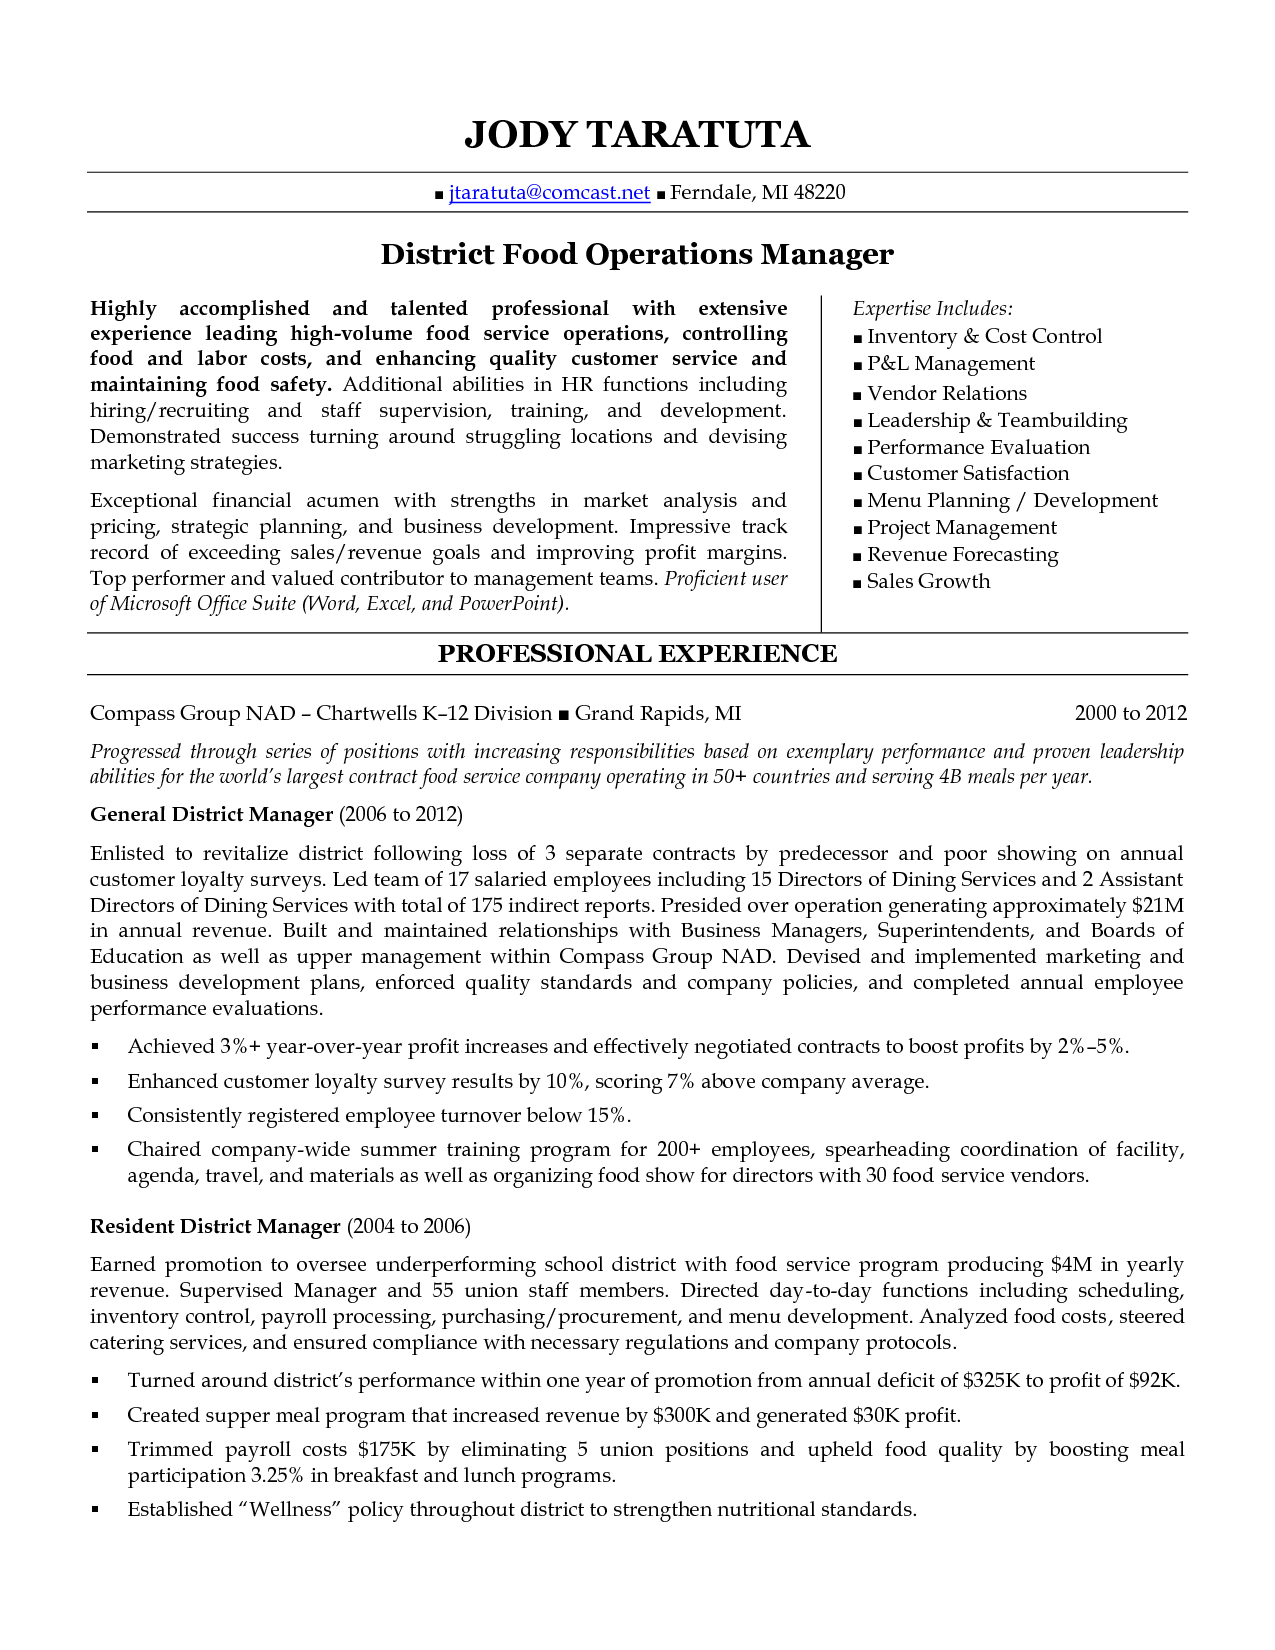 District Manager Resume  District Food Operations Manager In